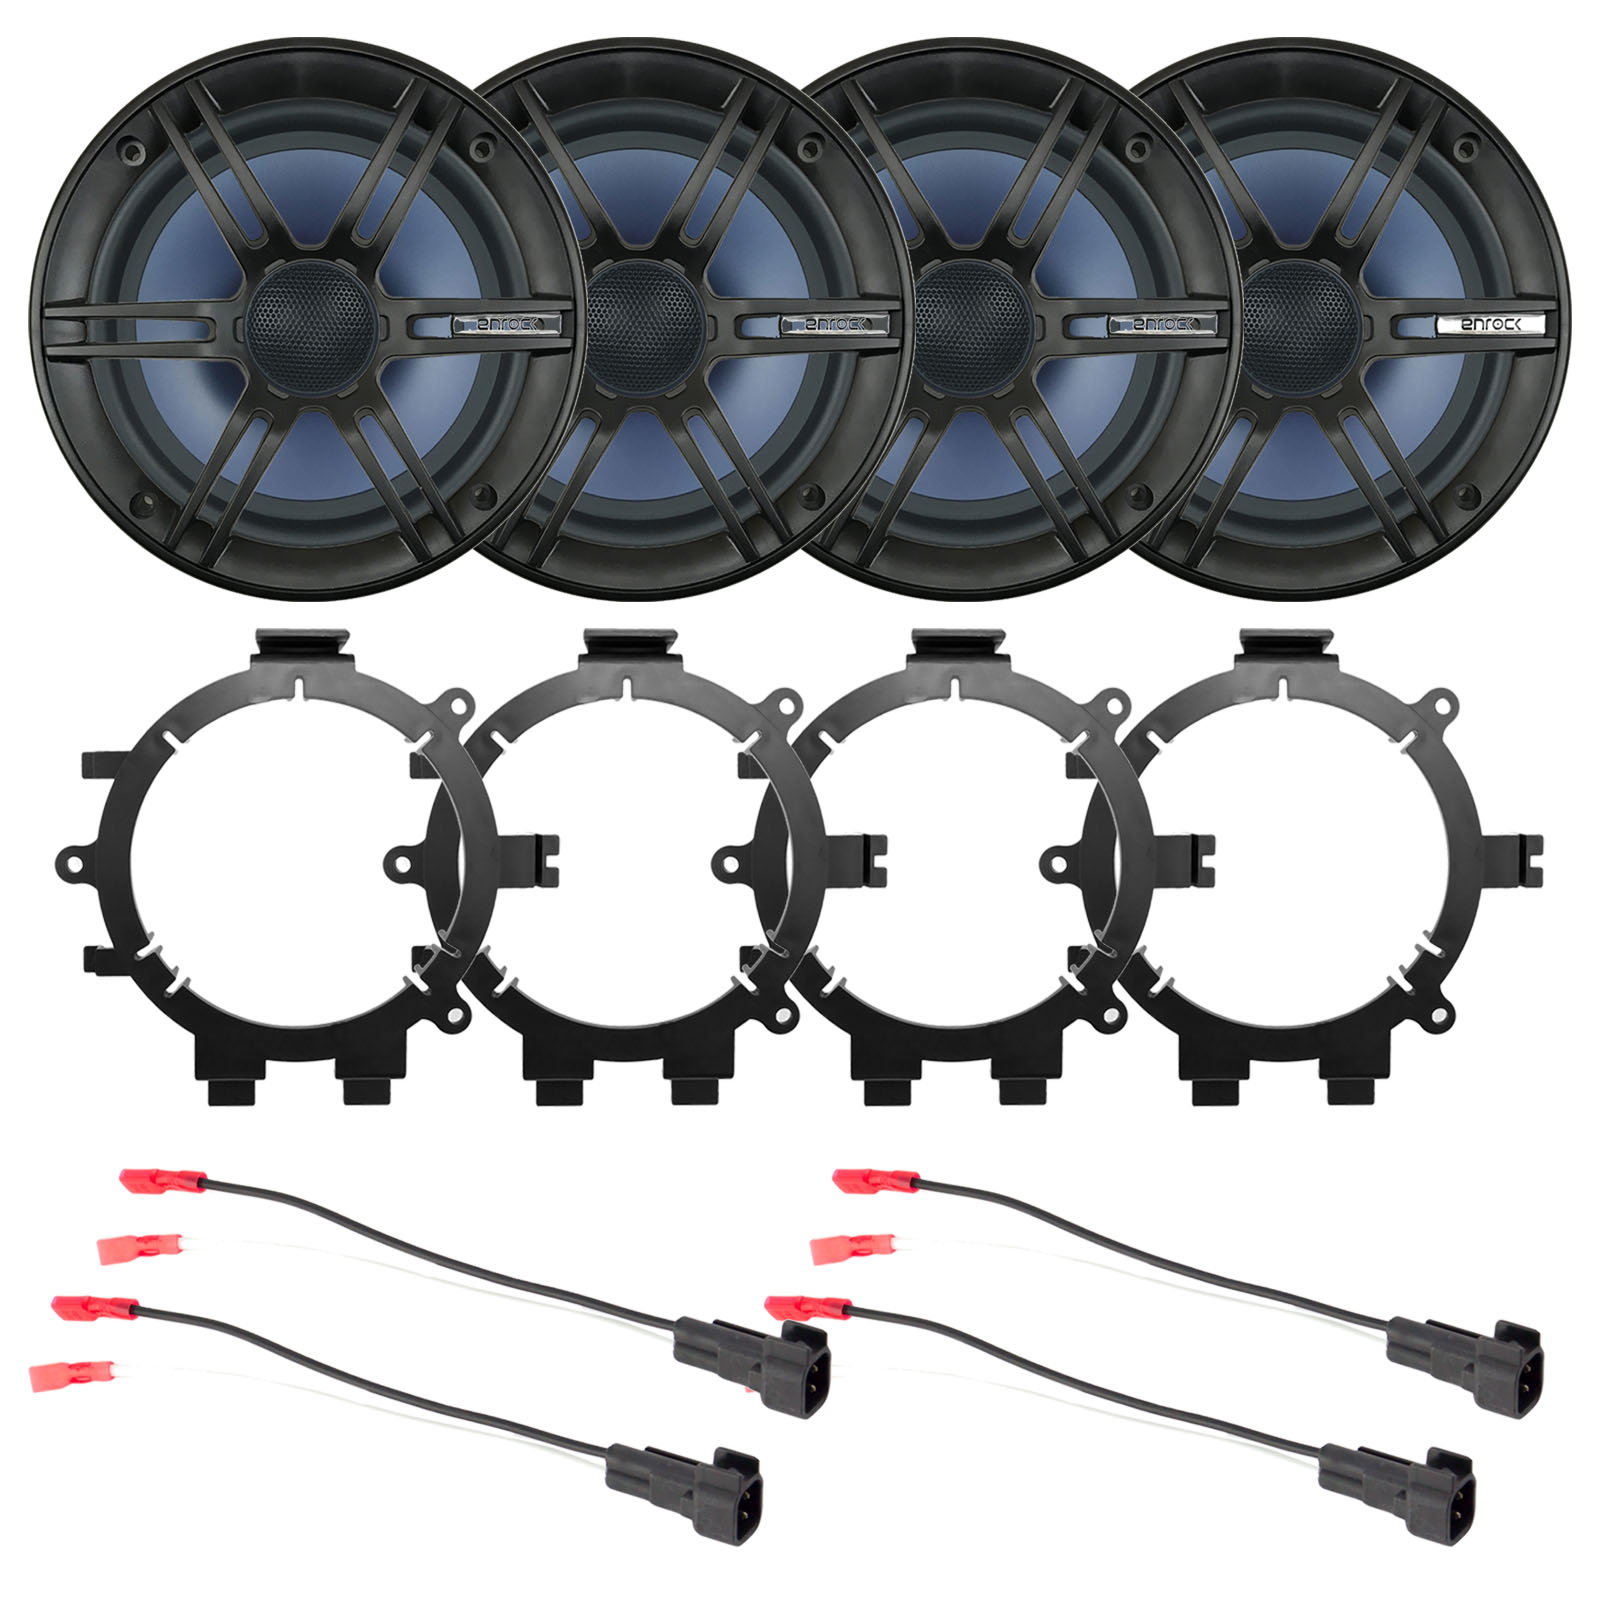 hight resolution of 4x enrock 6 5 2 way marine coaxial car boat audio stereo speakers with 4x enrock speaker mounting brackets 4x speaker wire harness walmart com